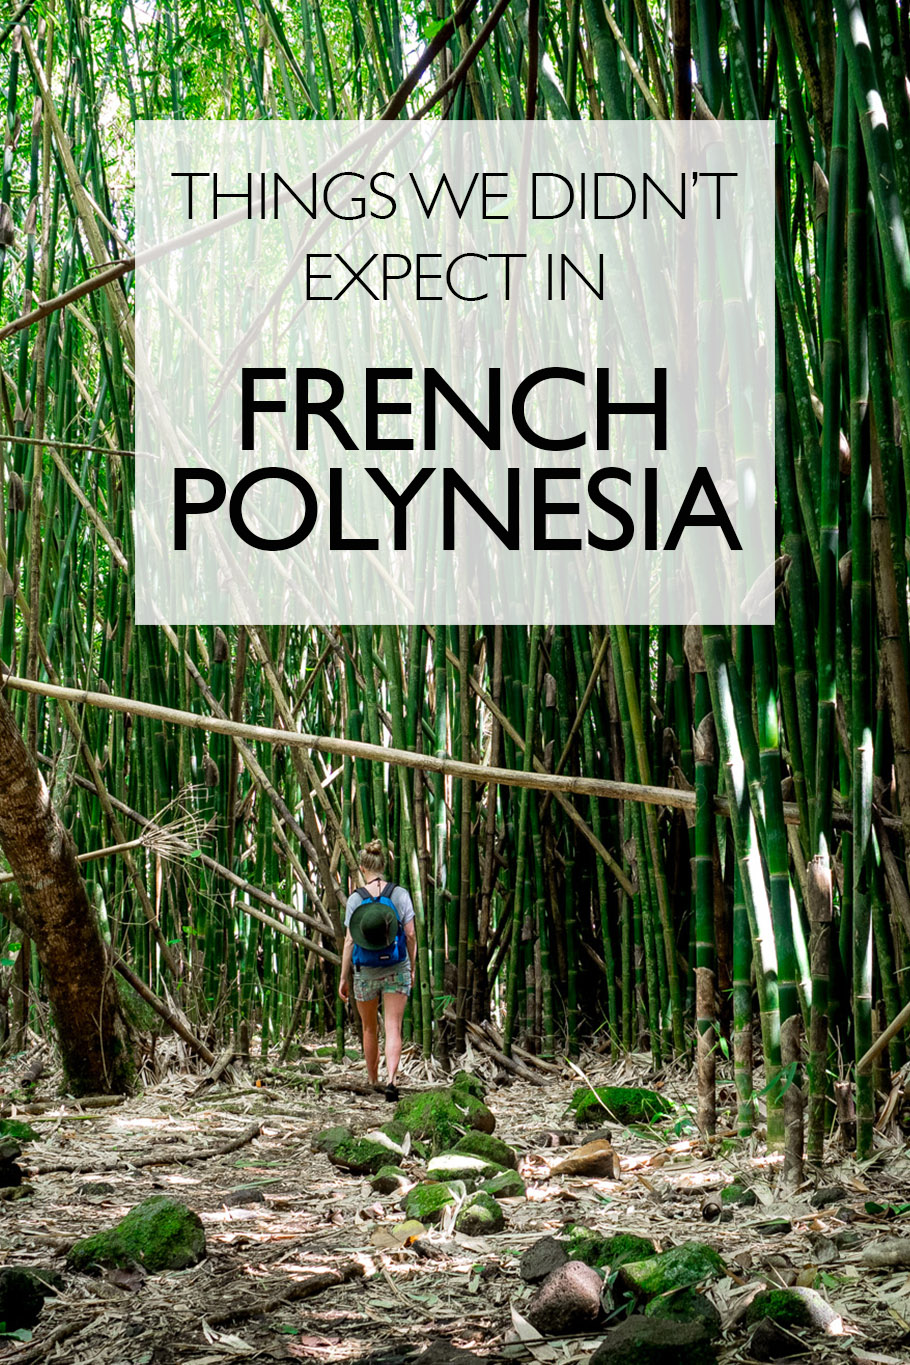 Things We Didn't Expect In French Polynesia